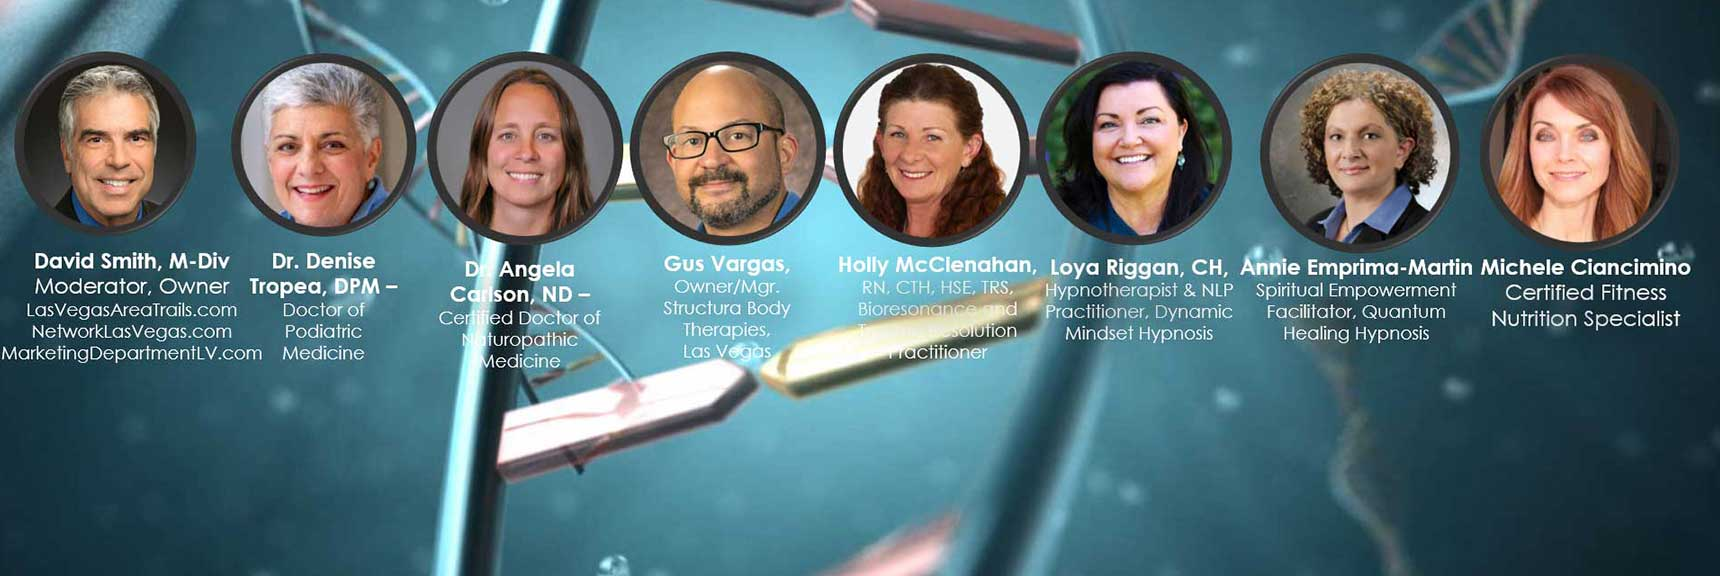 Achieving Your Optimal Health Webinar Series with Top Las Vegas Health Professionals